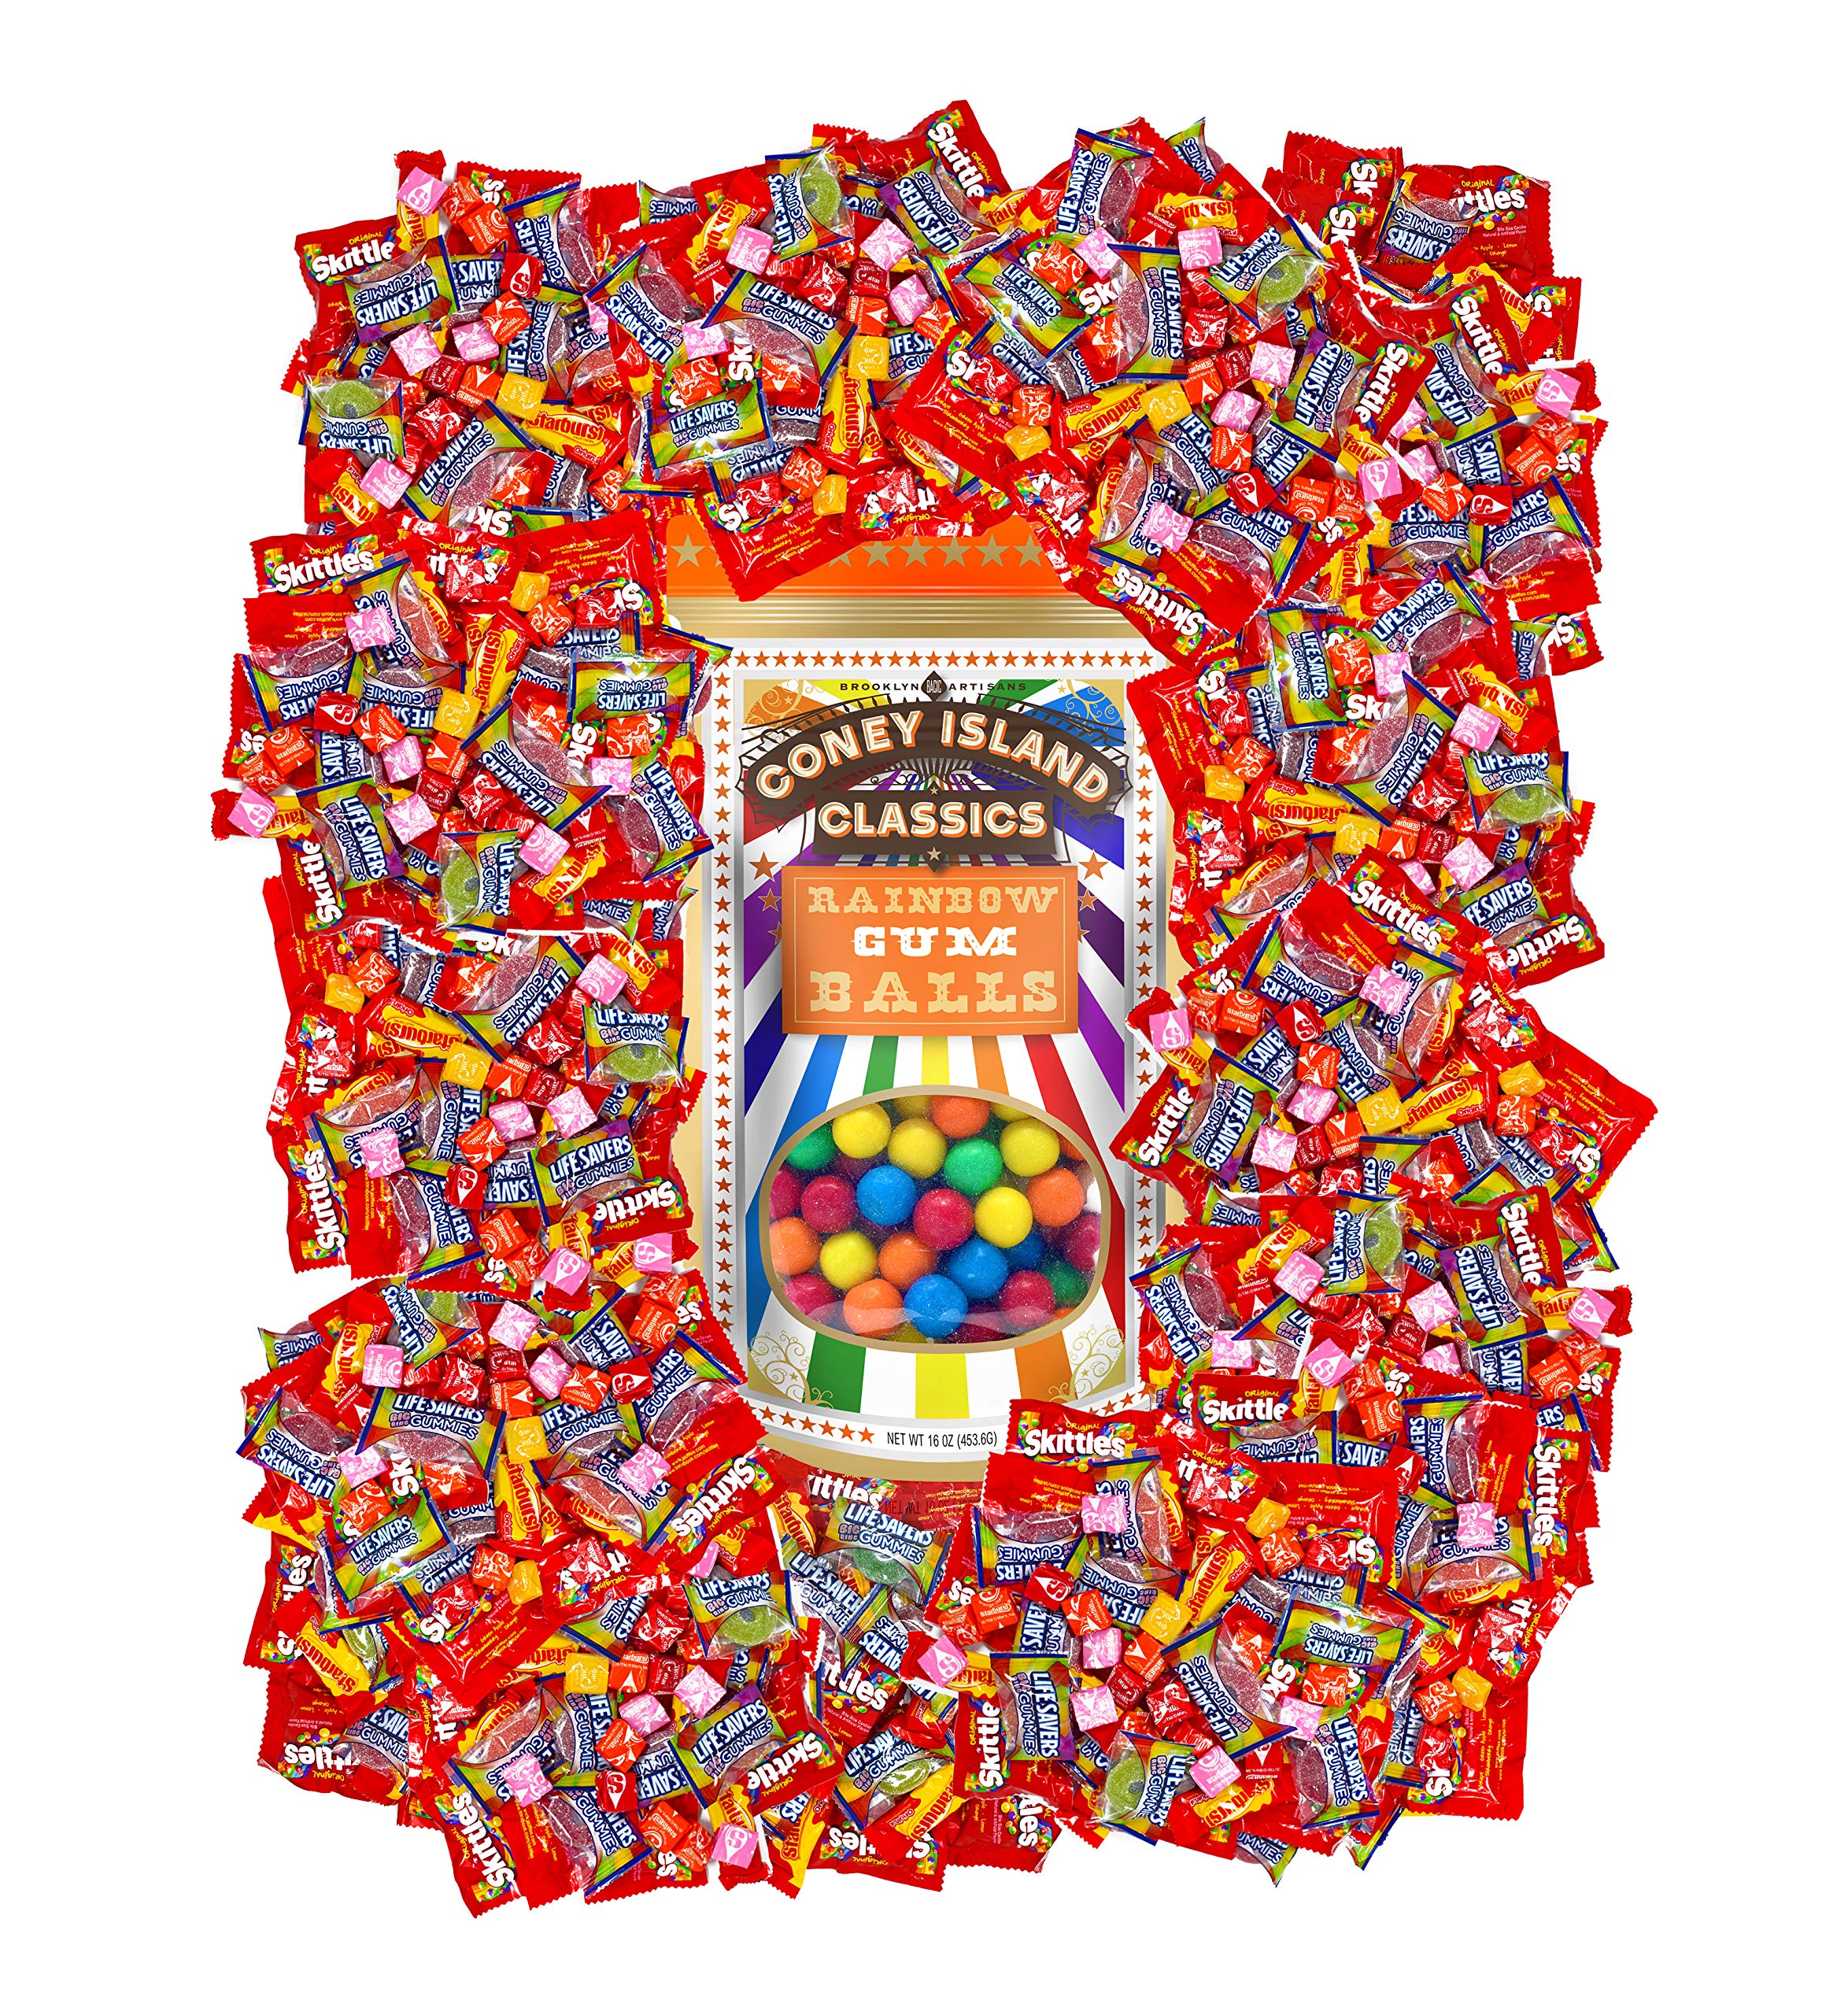 Holiday Bulk Candy Assortment Skittles, Starburst Life Savers Gummies and Coney Island Classics Gumballs, More Than 360 Fun Size Pieces 9.5 lbs (152 Oz) by Assortit